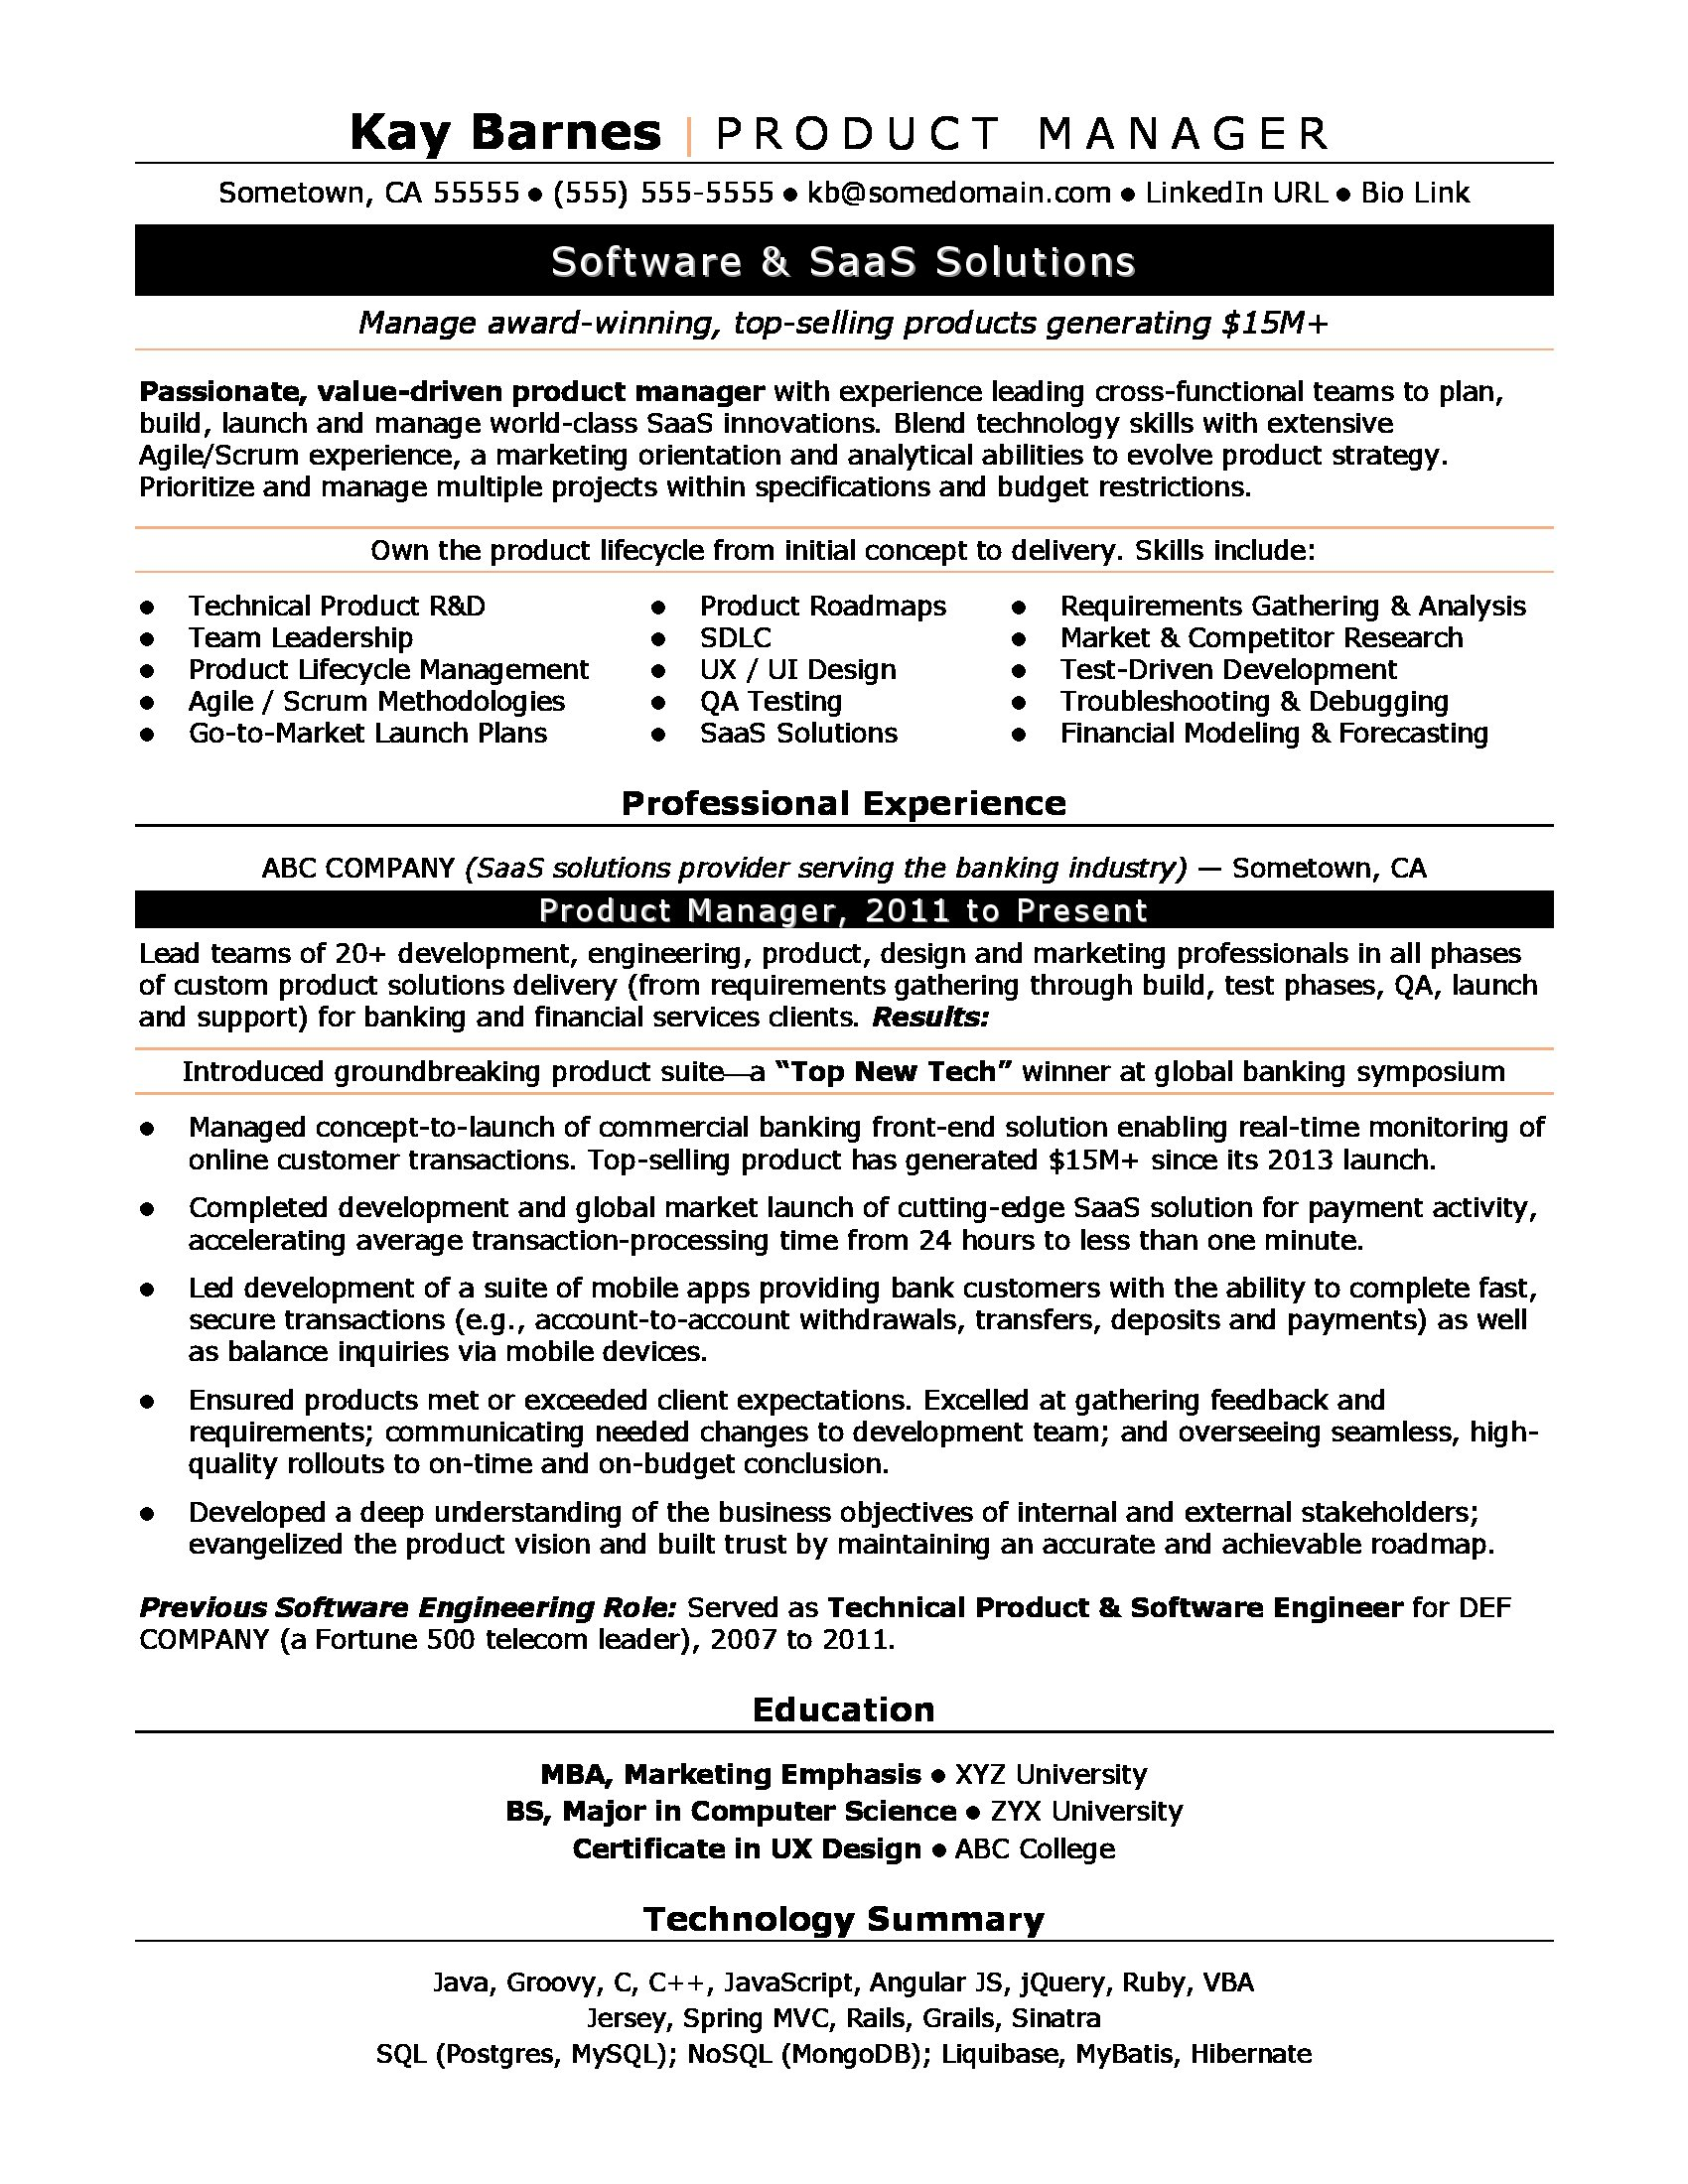 product manager resume sample monster examples productmanager florist format for nursery Resume Product Manager Resume Examples